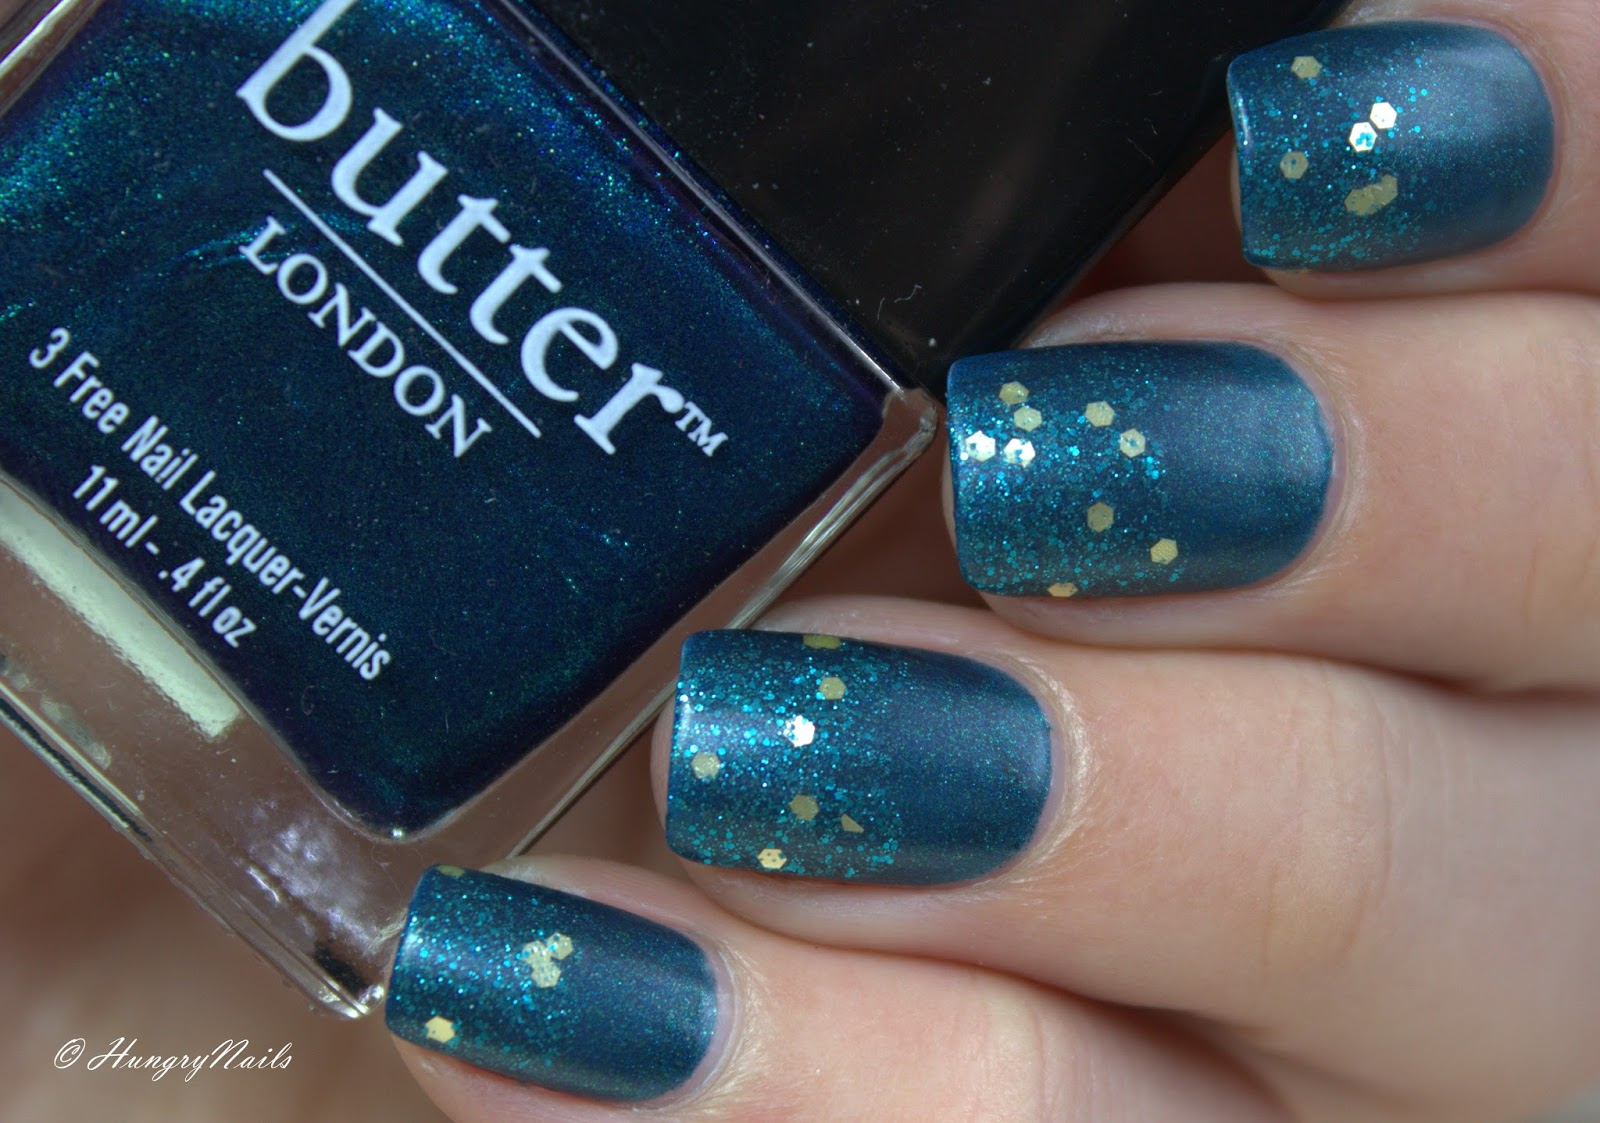 http://hungrynails.blogspot.de/2015/04/butter-london-bluey.html